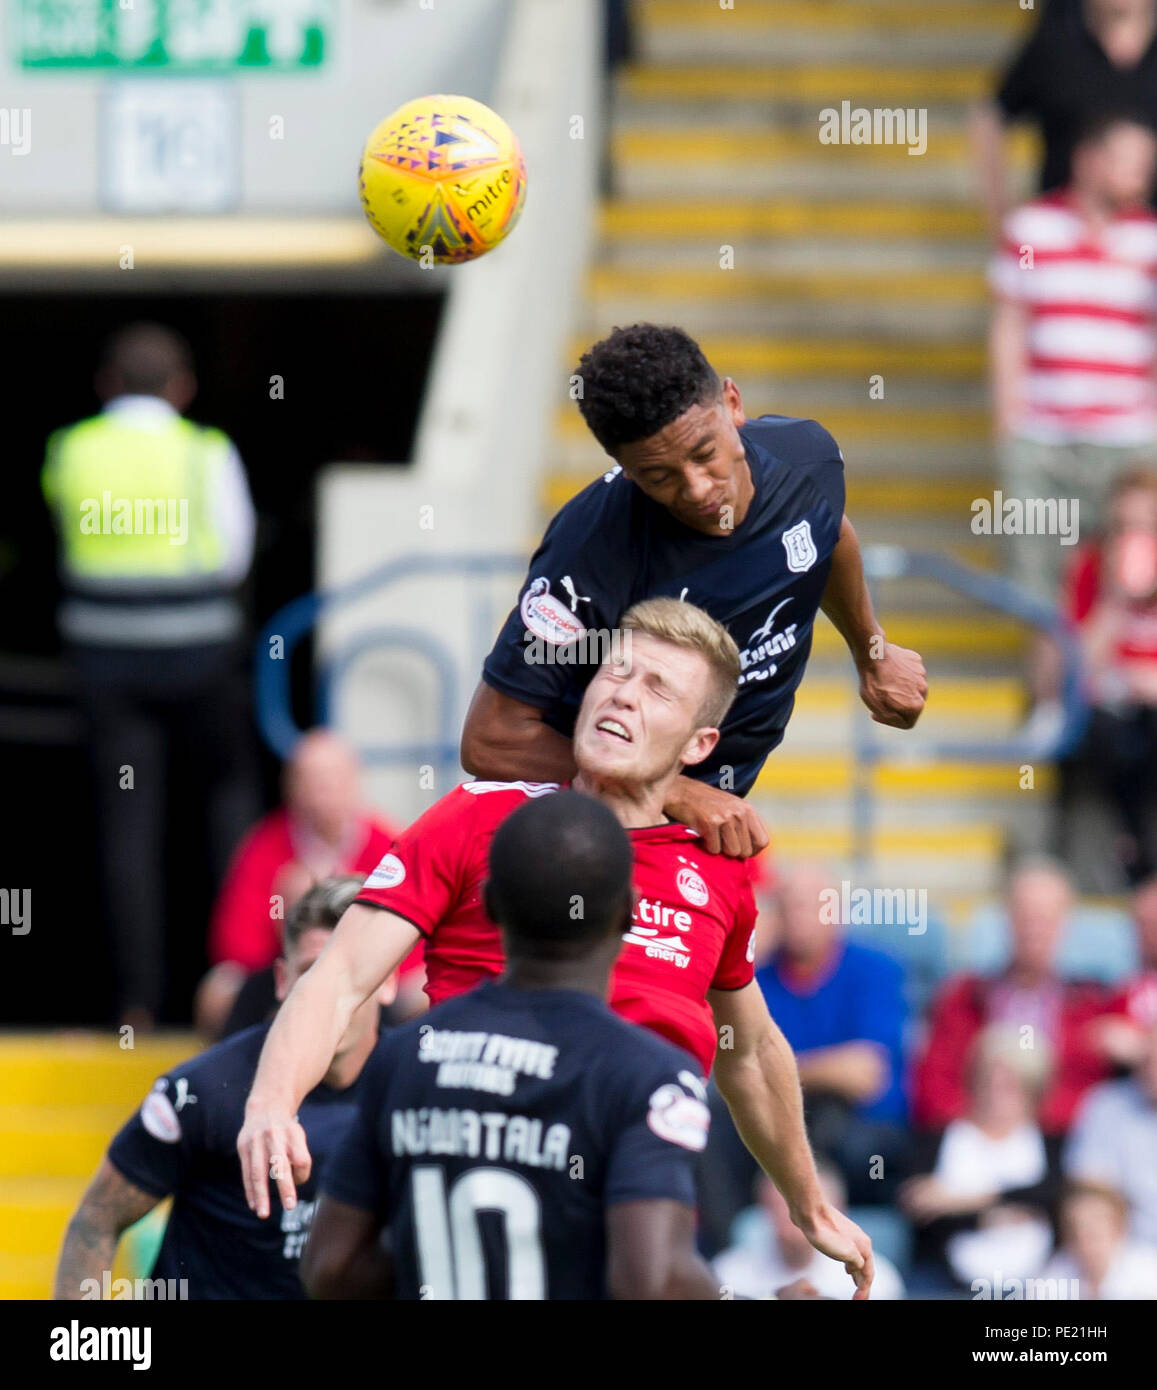 Dens Park, Dundee, UK. 11th Aug, 2018. Ladbrokes Premiership football, Dundee versus Aberdeen; Nathan Ralph of Dundee competes in the air with Sam Cosgrove of Aberdeen Credit: Action Plus Sports/Alamy Live News - Stock Image